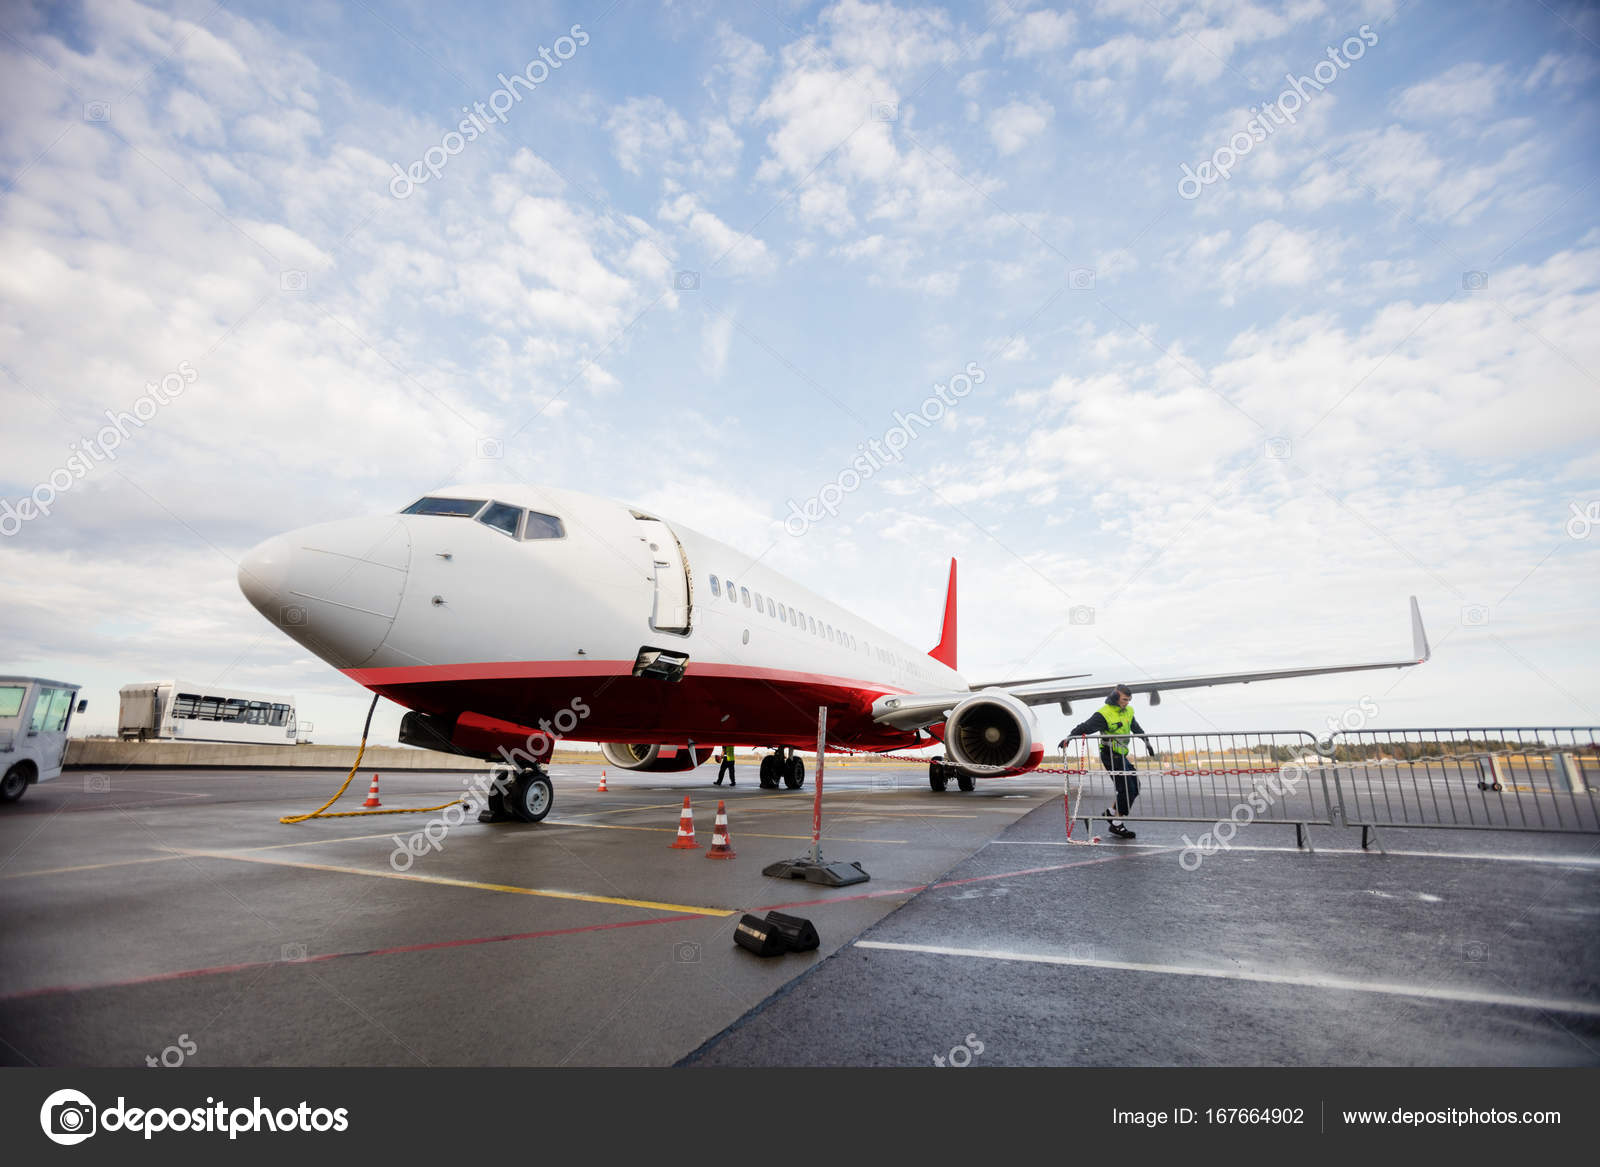 Commercial Airplane On Wet Runway Against Cloudy Sky Stock Photo